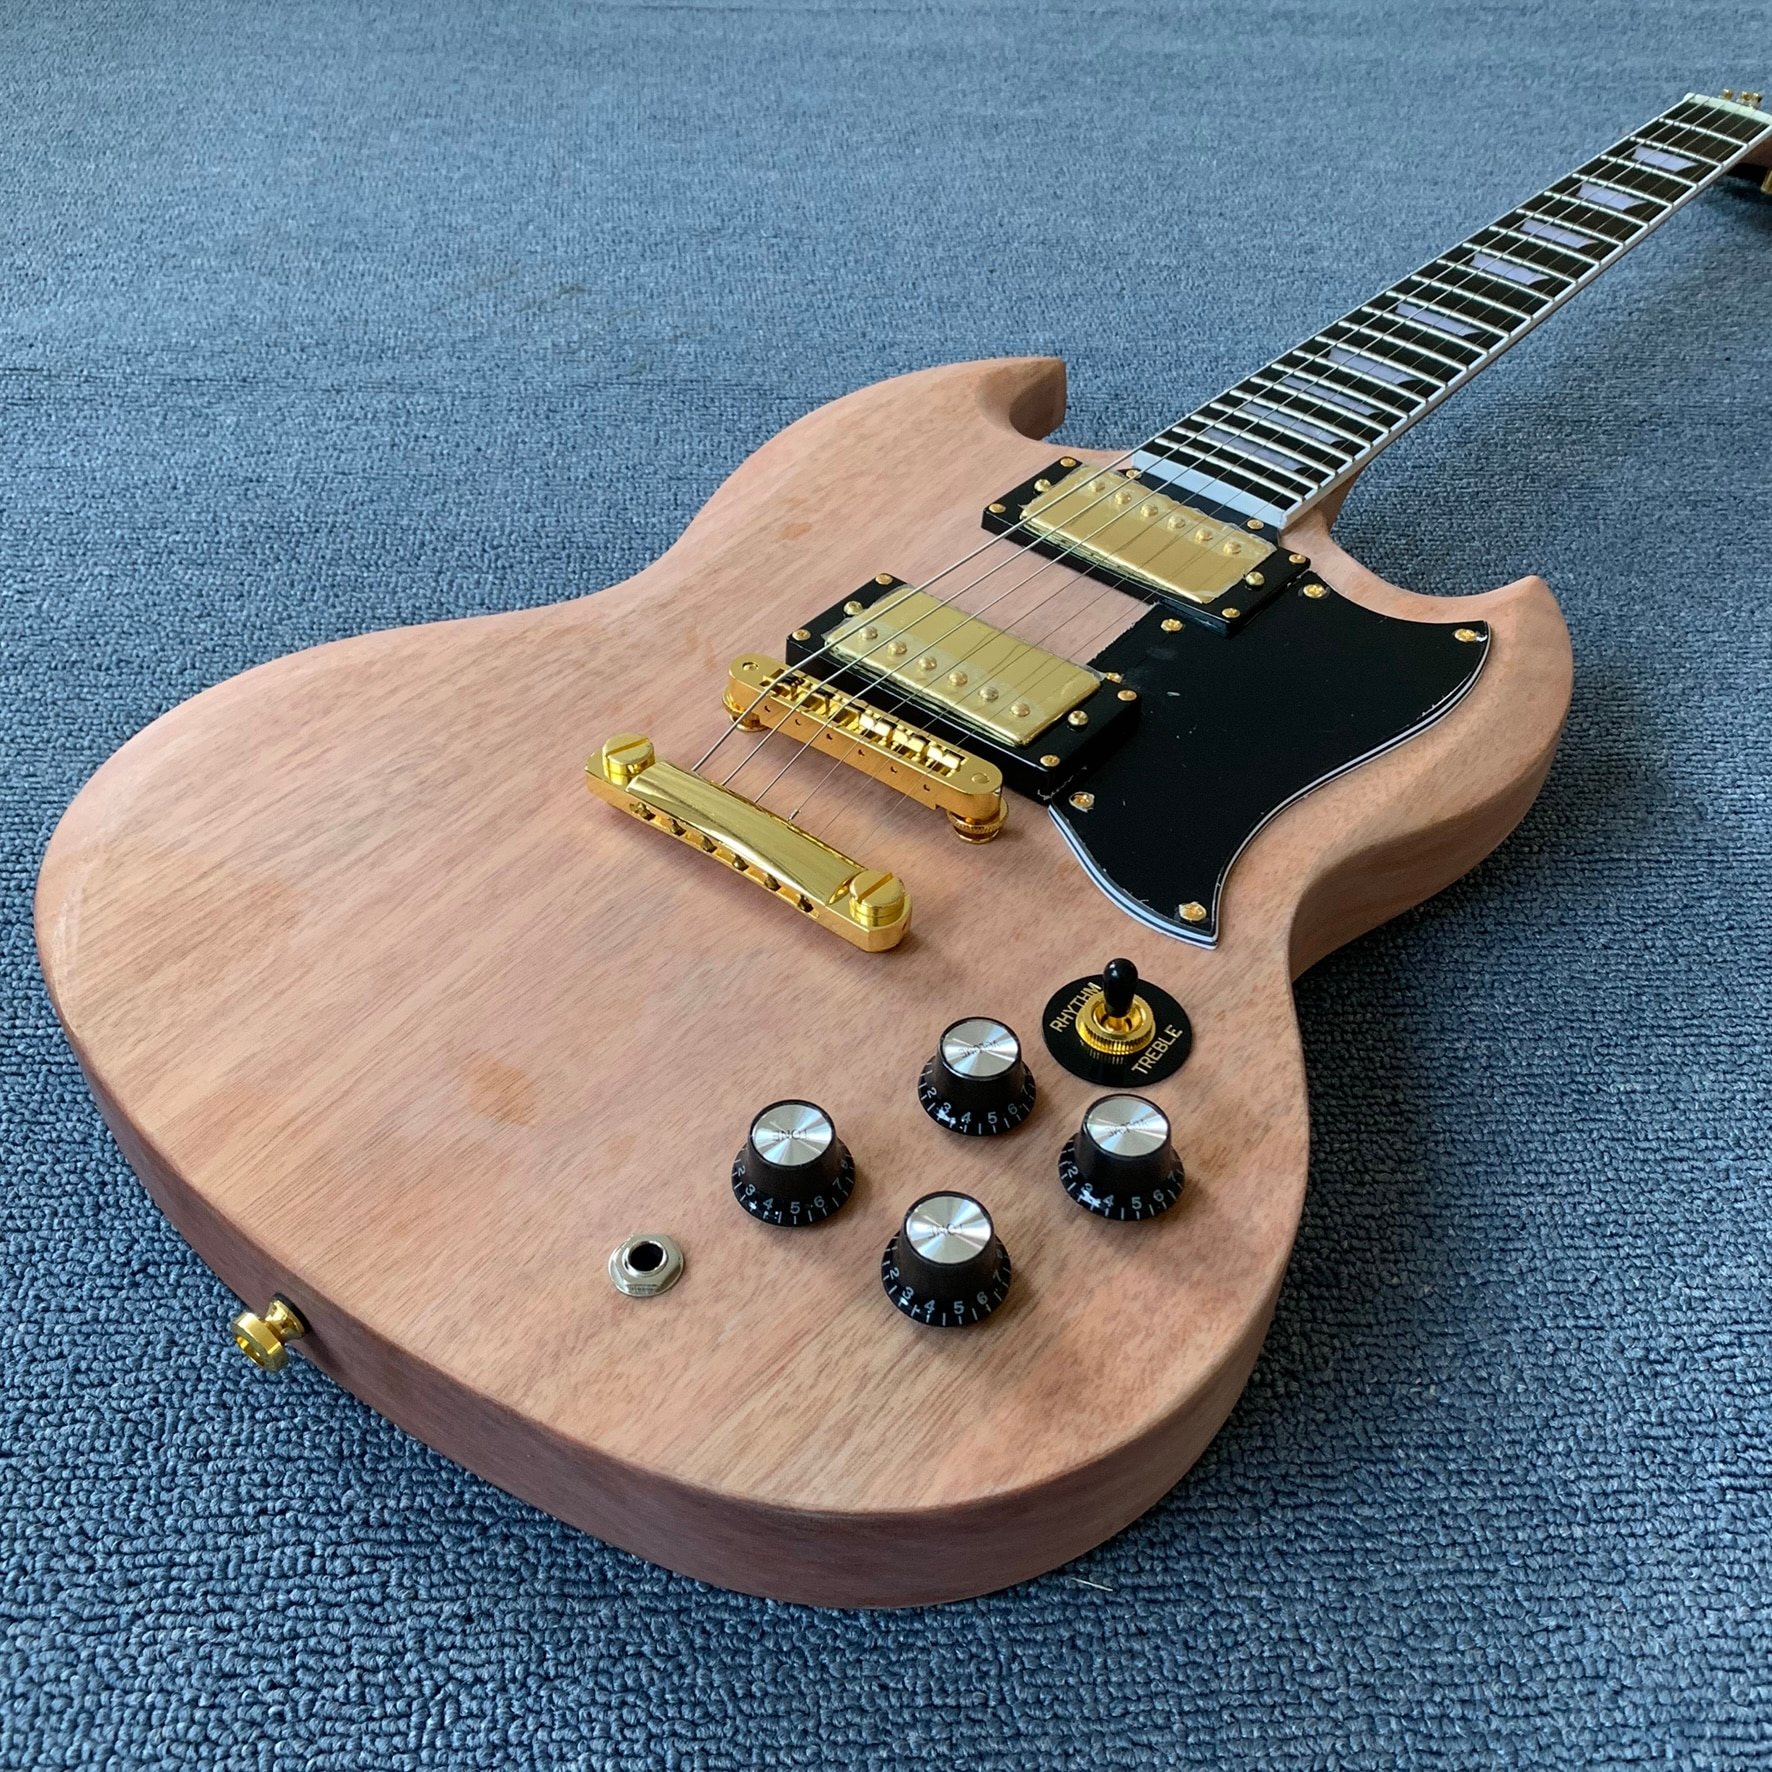 Electric guitar Partially Prepared Products , one piece body&neck,Fingerboard inlaid with blocks, Ebony Fingerboard,TonePro brid